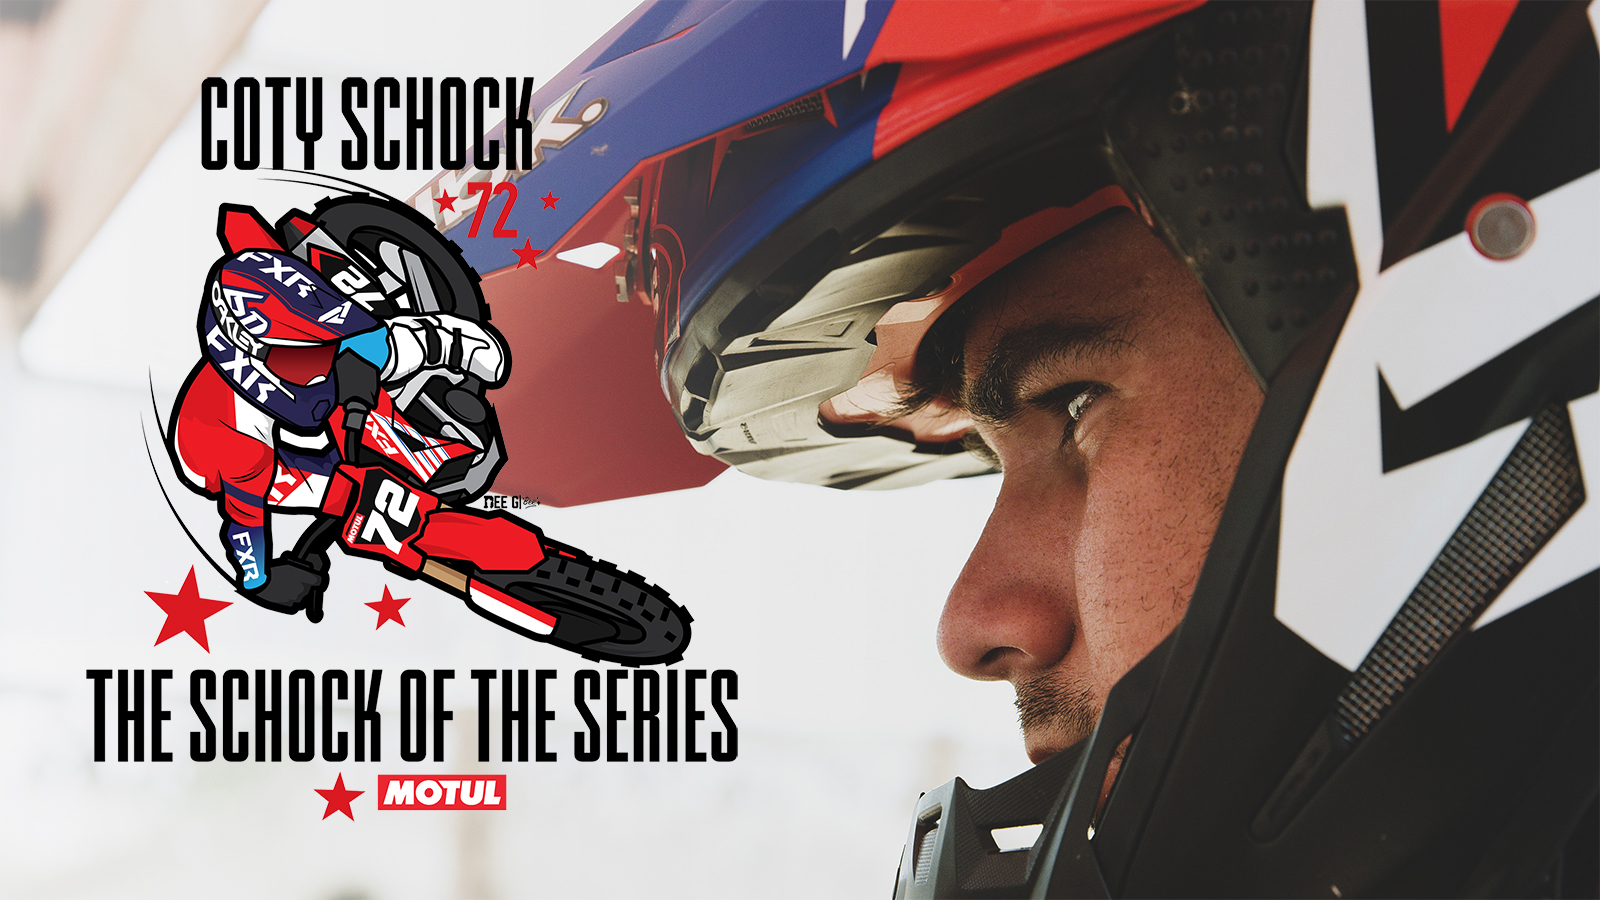 Coty Schock   The Schock of the Series